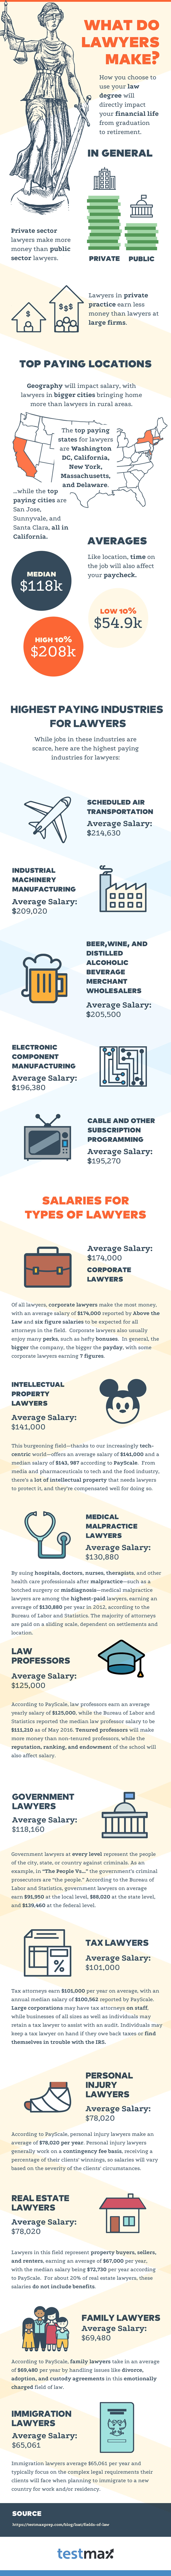 Average Lawyer Salaries by Field